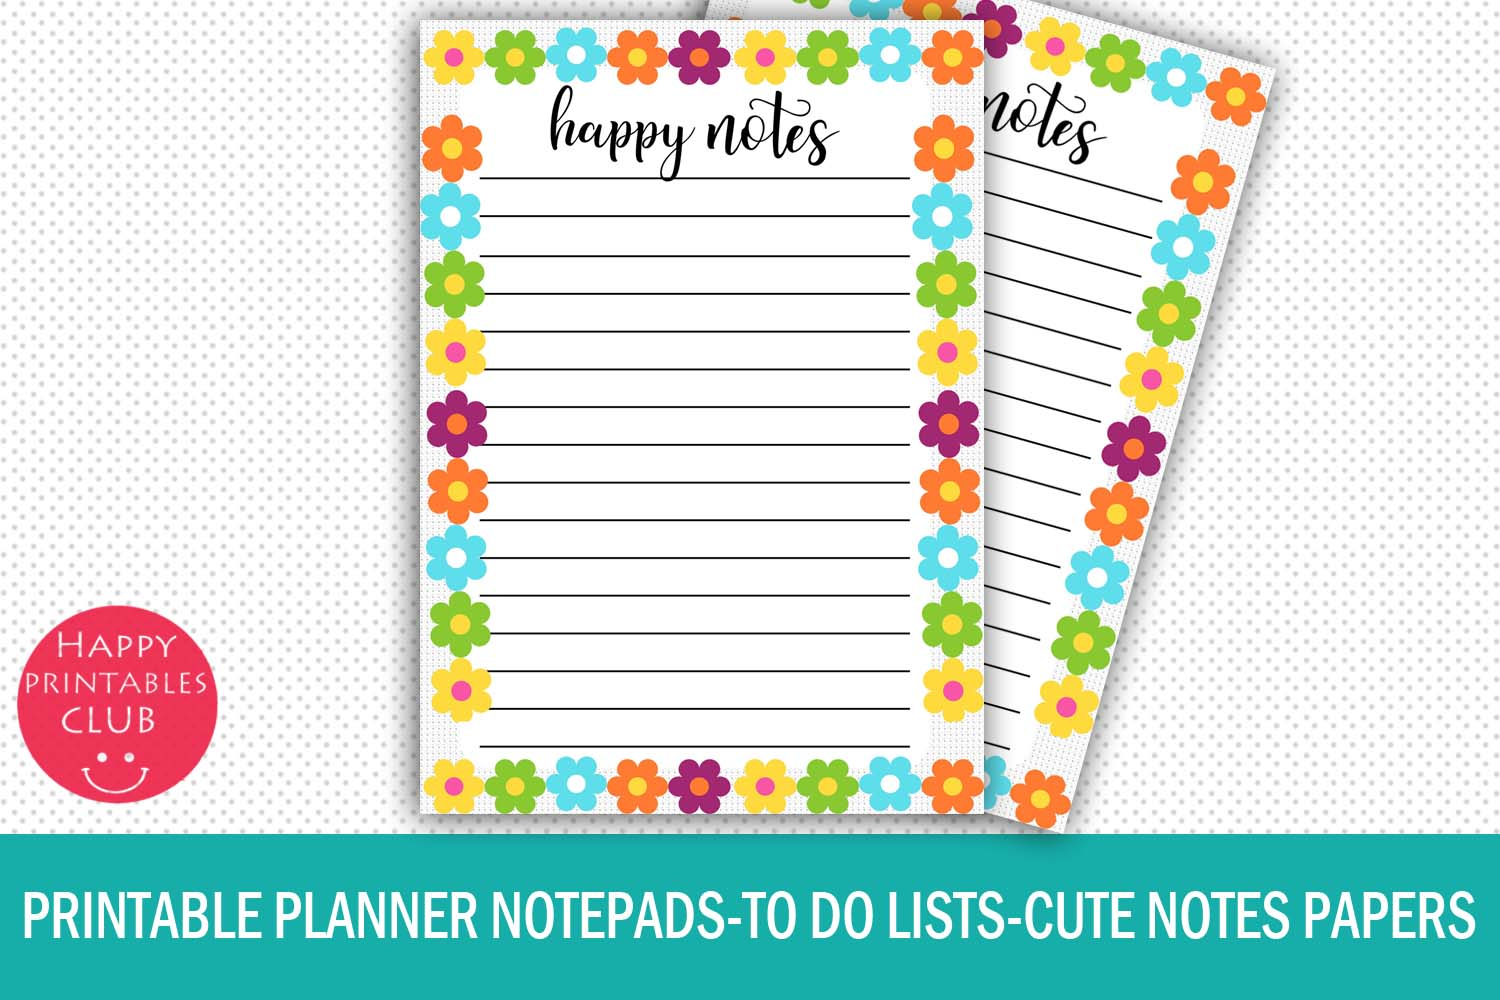 photo regarding Printable Note Papers named Printable Planner Notepads- Lovely Notes Papers